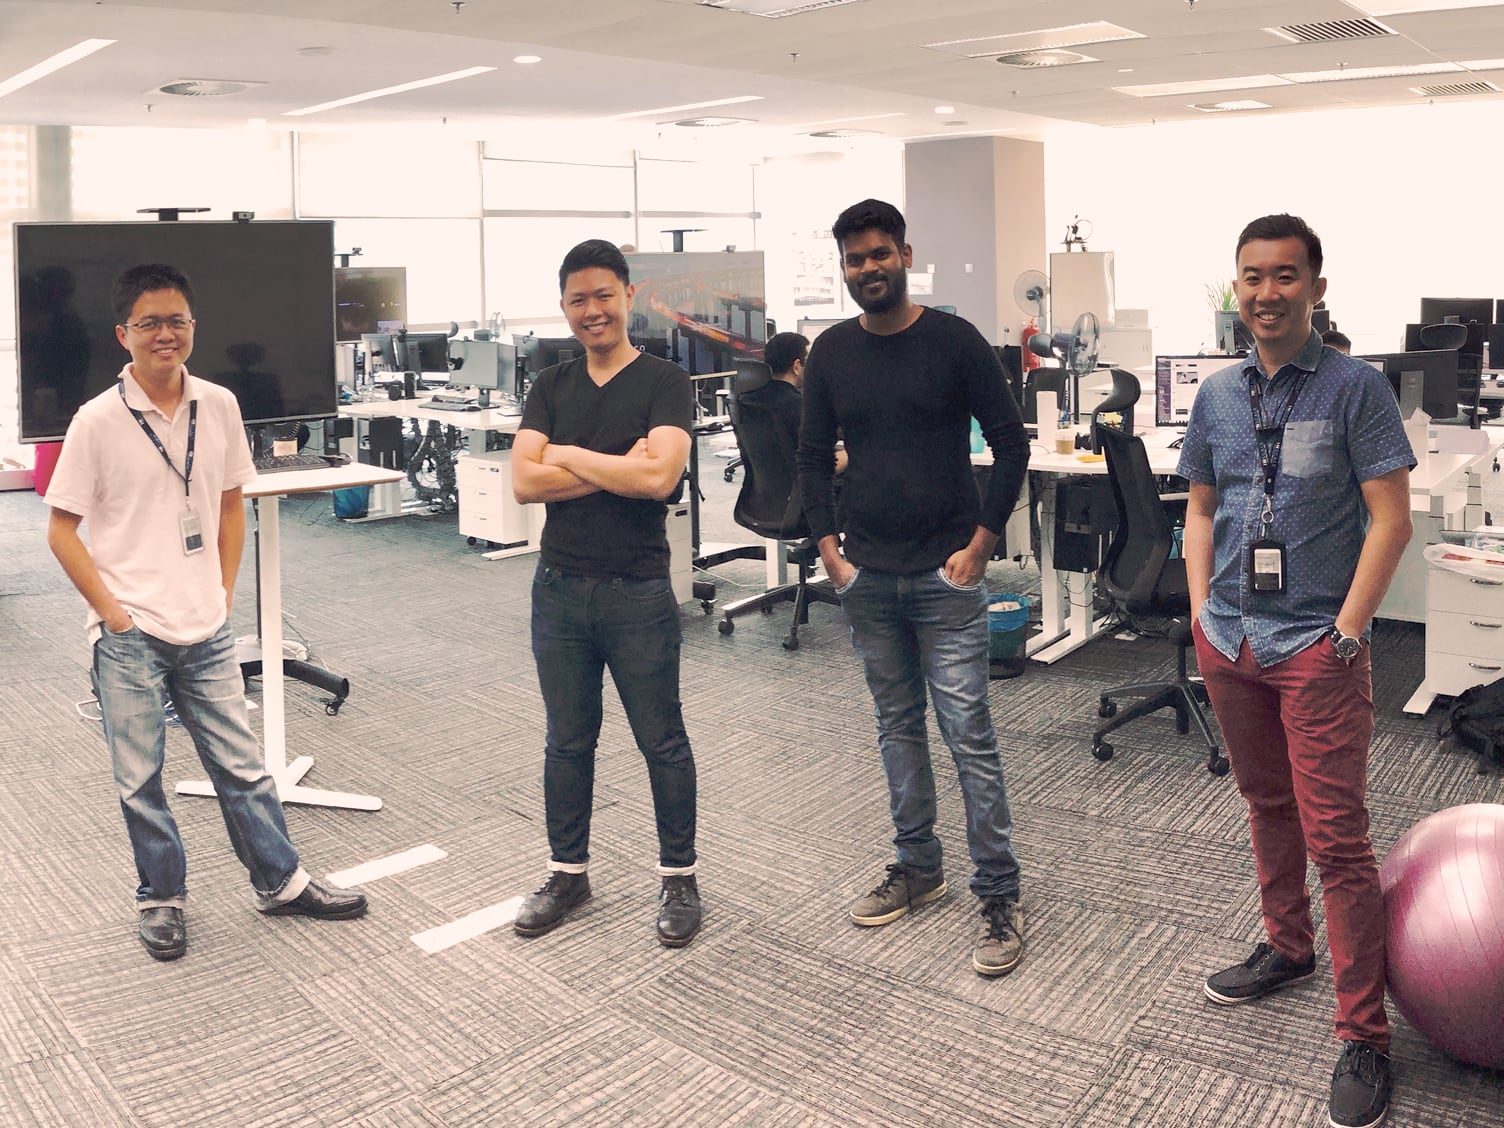 INSCALE - Work Environment - Group Photo